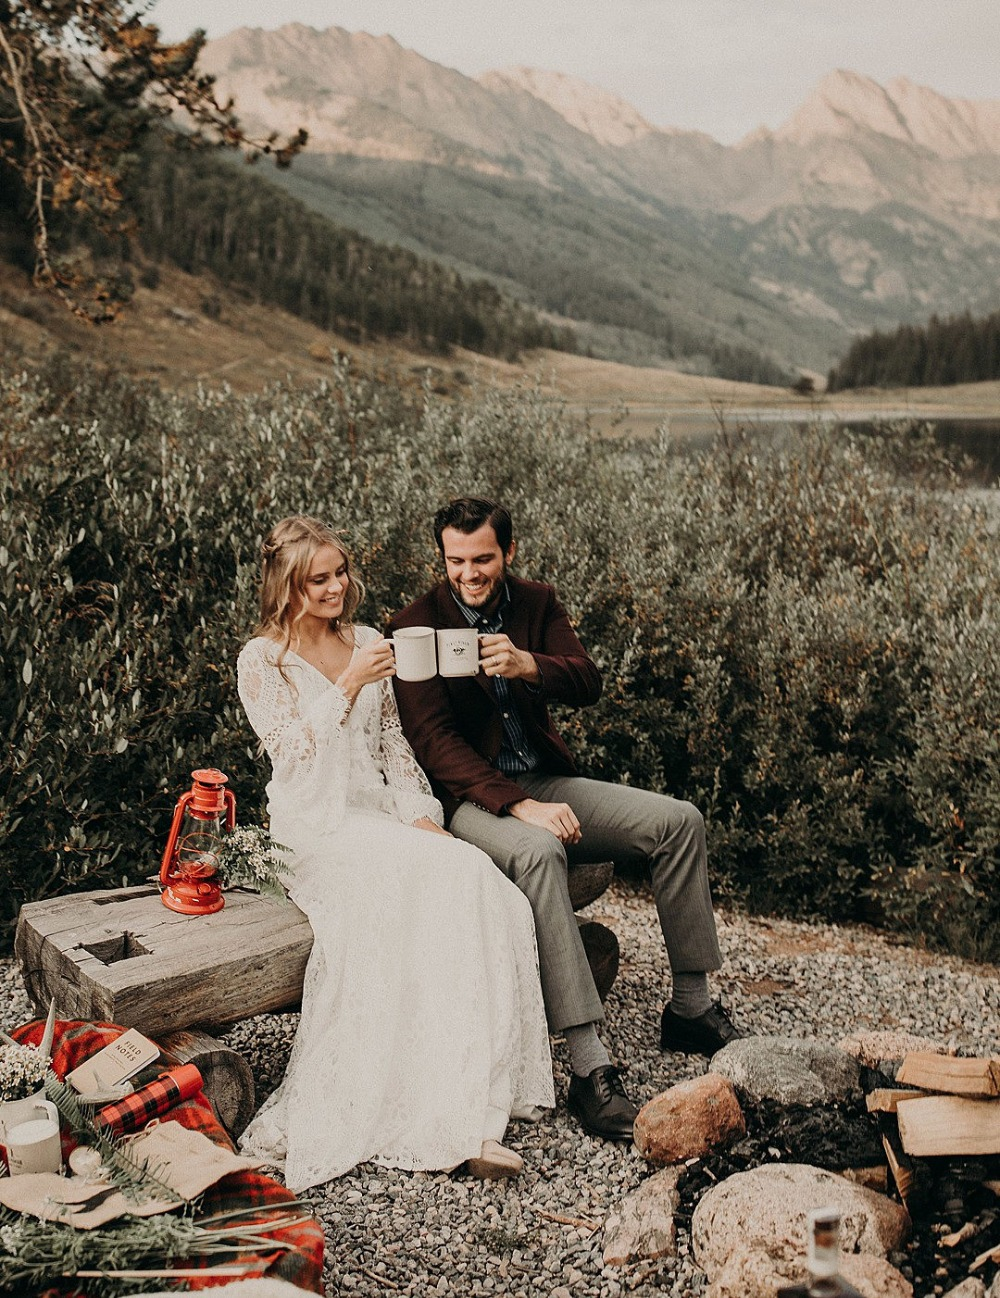 lets go camping Wes Anderson style wedding